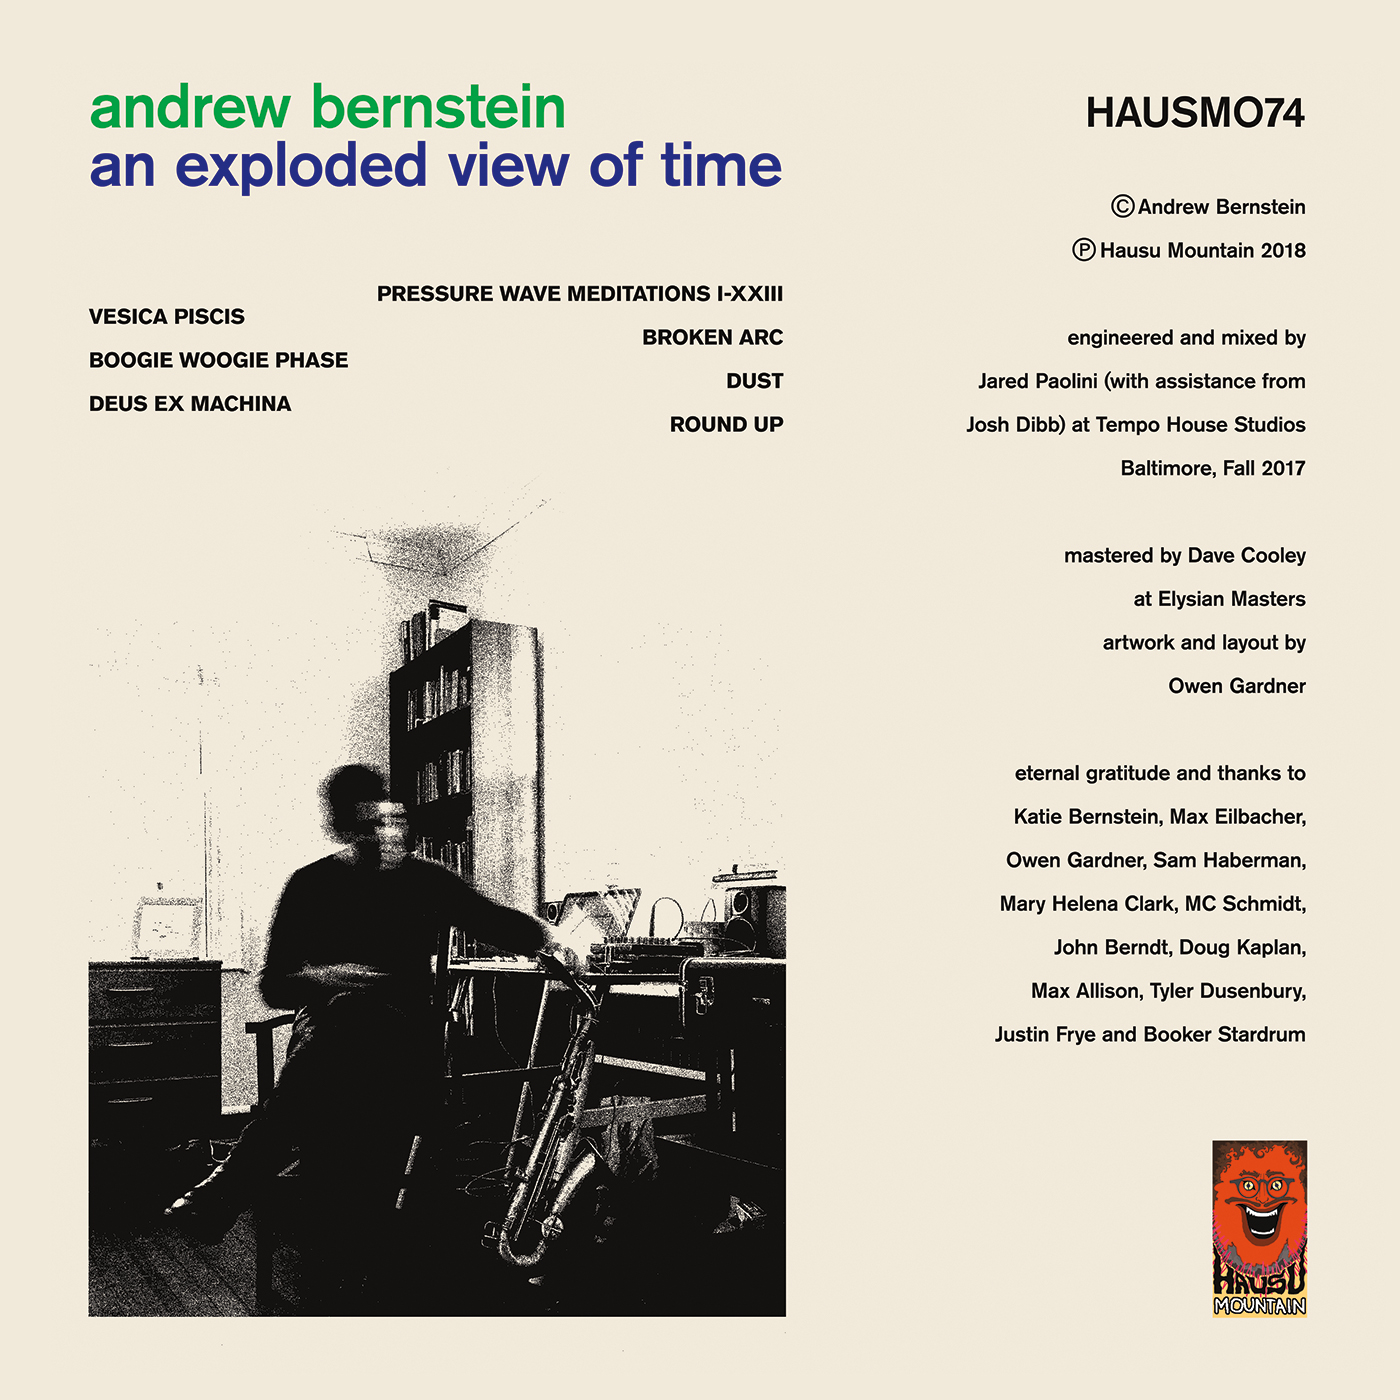 HAUSMO74 - Andrew Bernstein - An Expoded View of Time - BACK